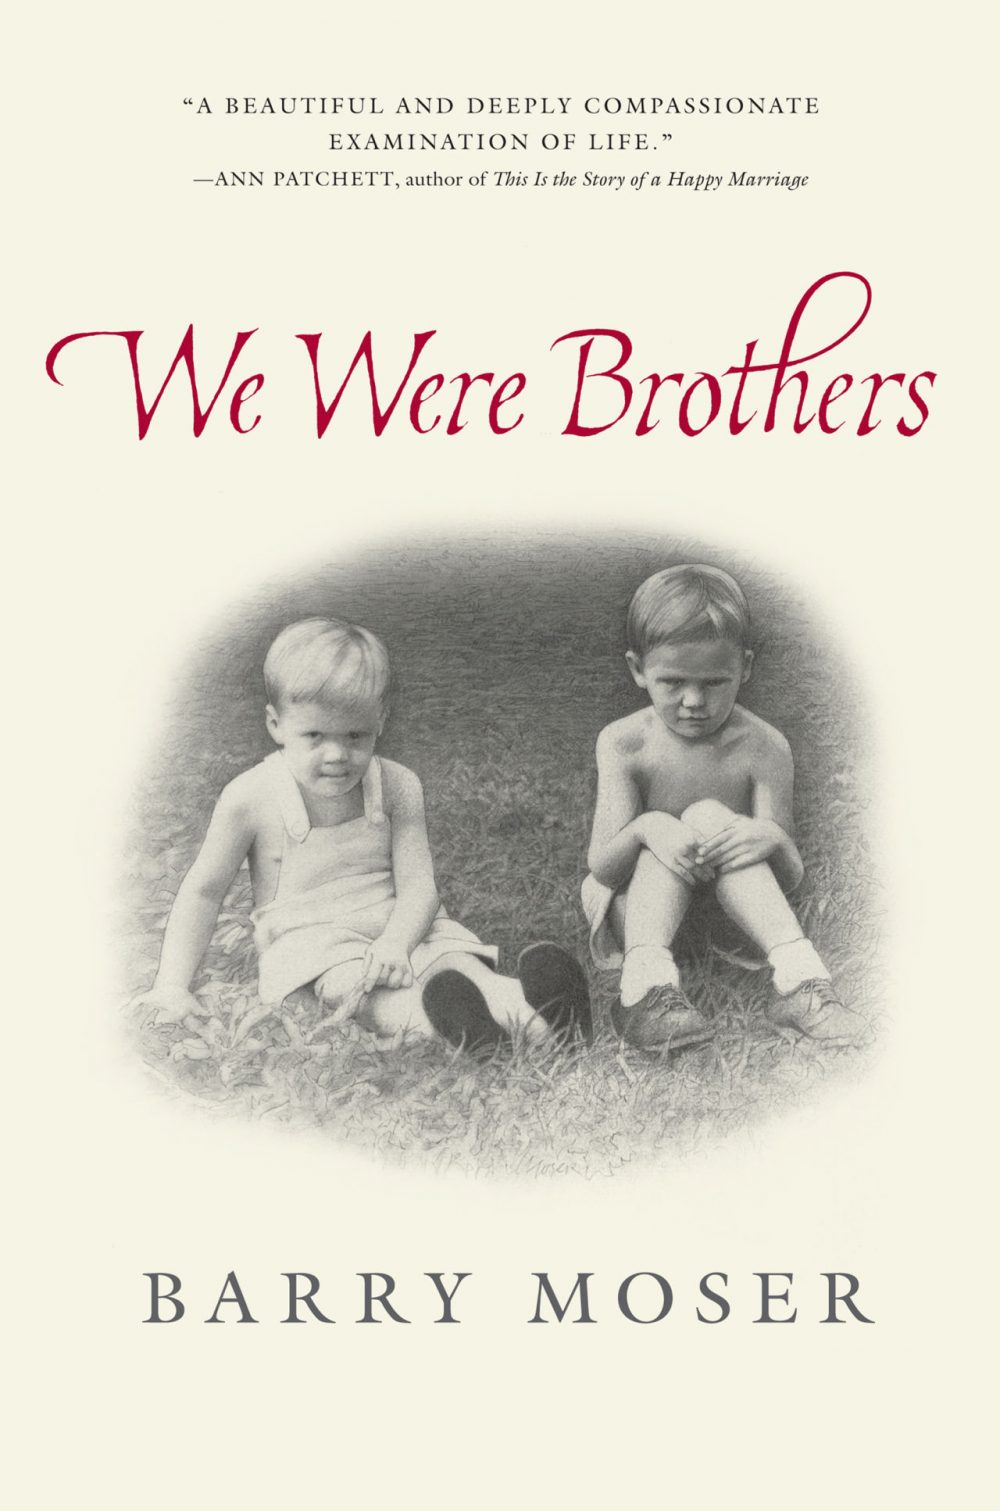 Barry Moser's new memoir is about his relationship with his brother and his relationship with his Southern childhood. (Courtesy Algonquin Books)